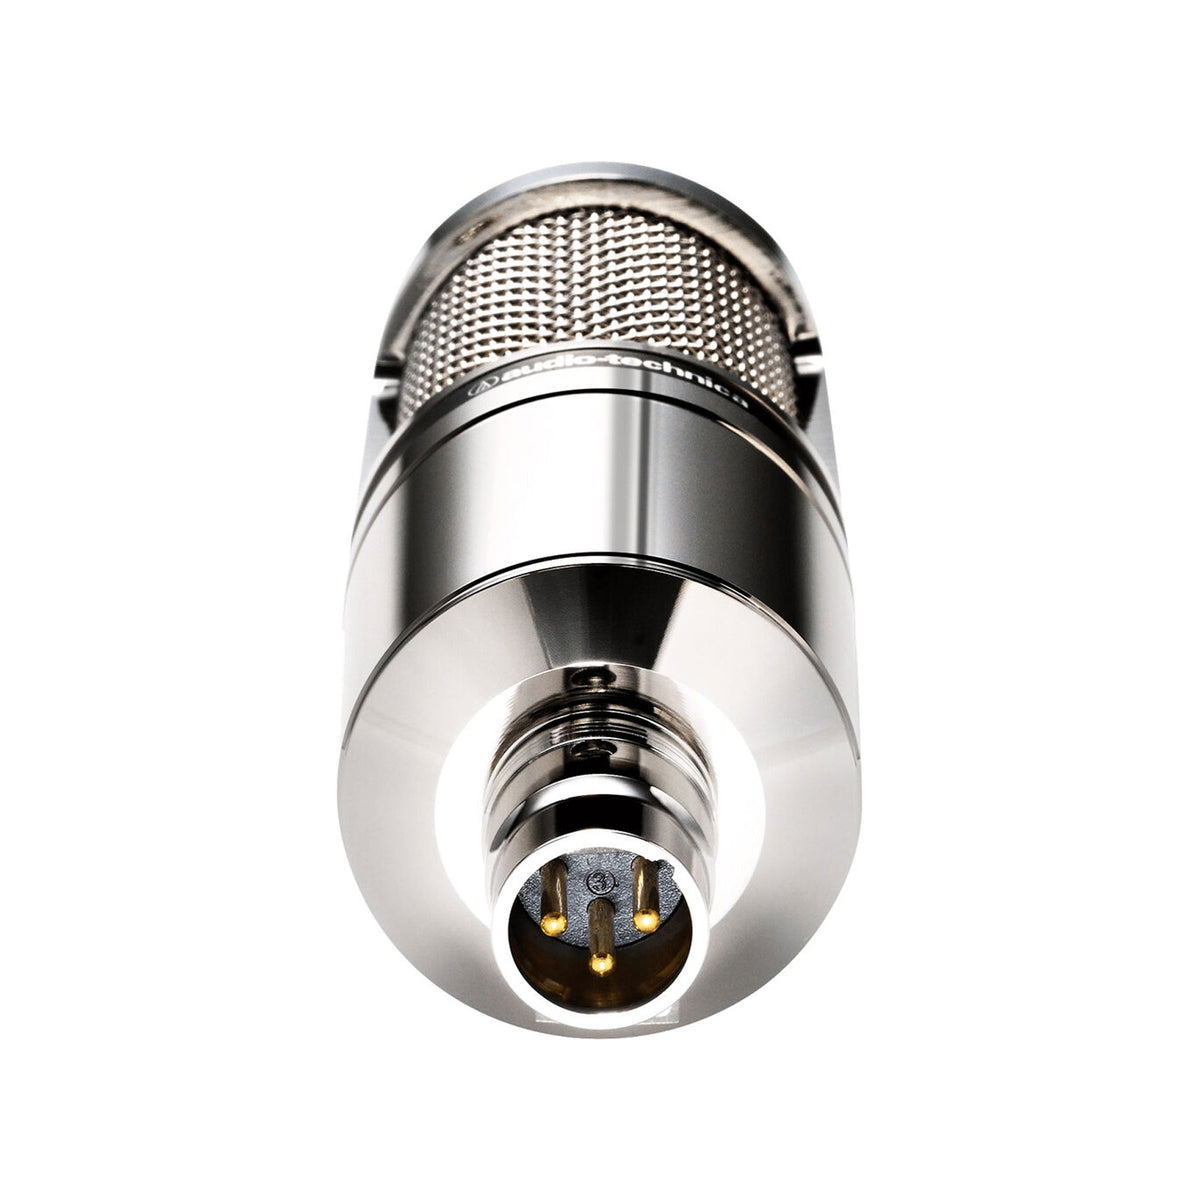 Audio-Technica: AT2020V Microphone - Limited Edition Chrome